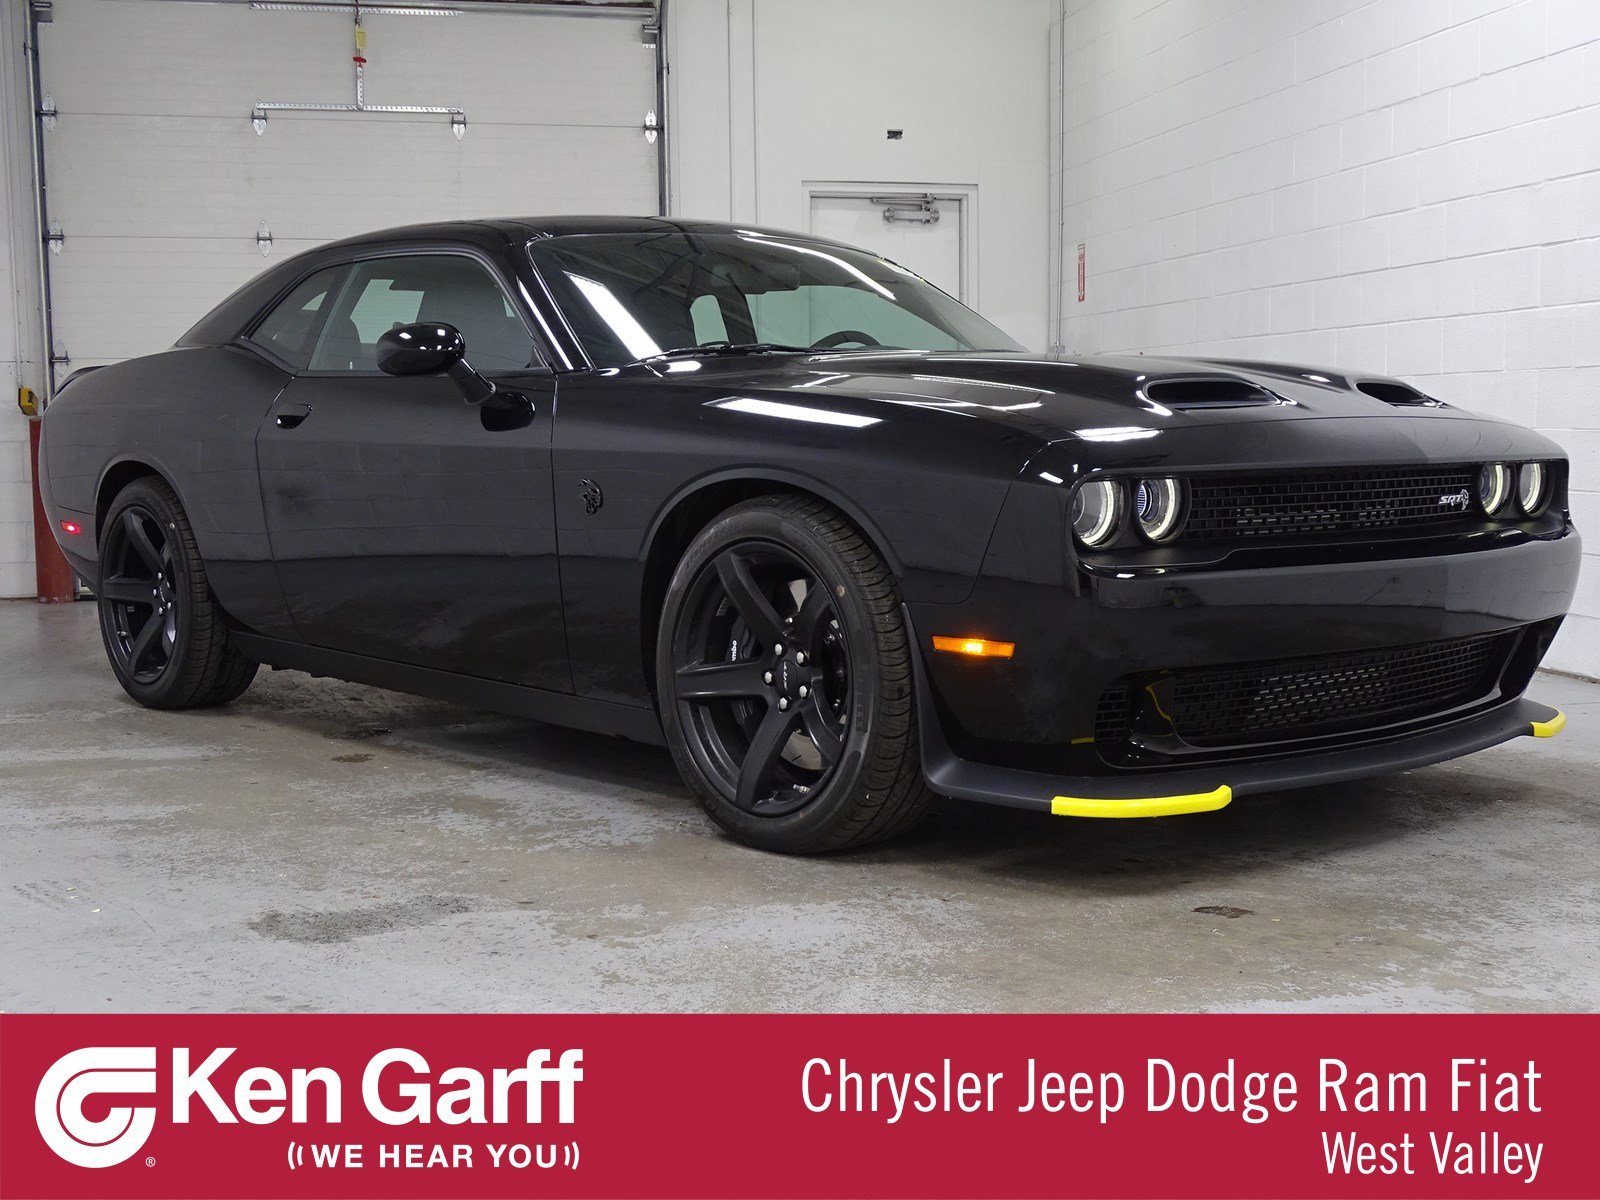 Ken Garff Dodge >> New 2019 Dodge Challenger SRT Hellcat Redeye 2dr Car #1D90601 | Ken Garff Automotive Group